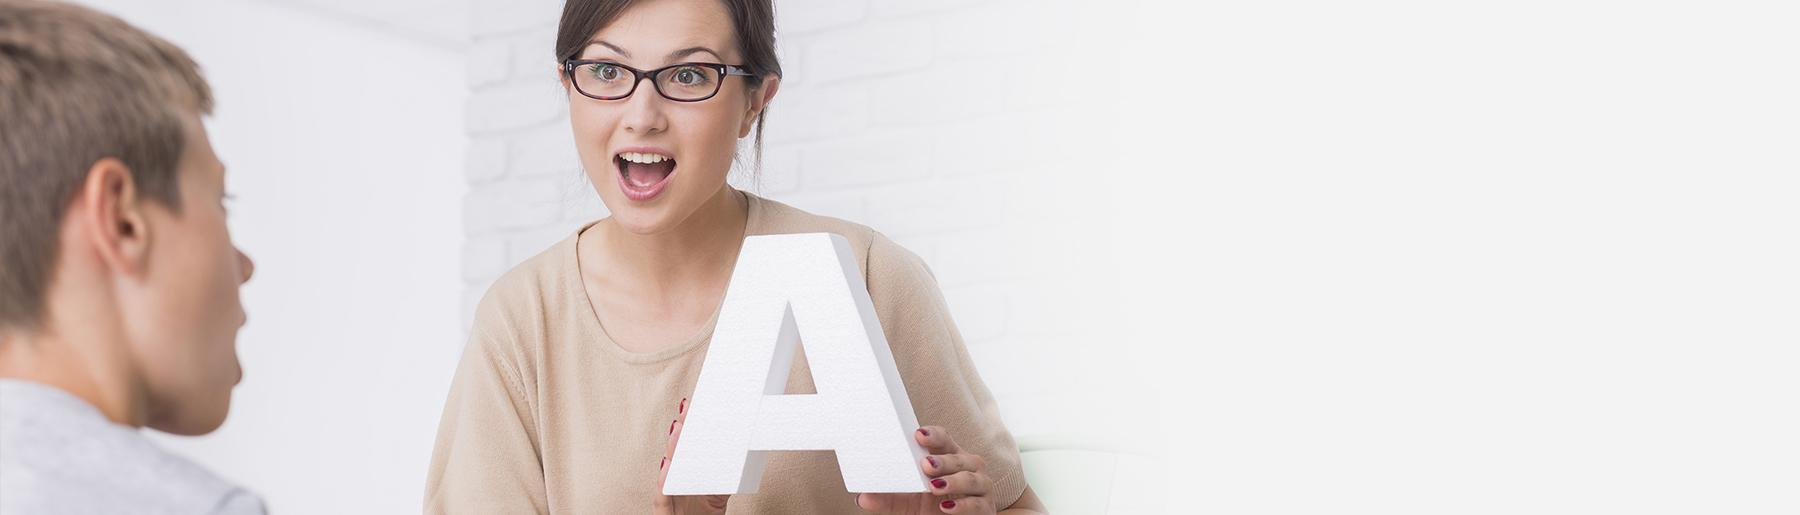 woman holding the letter a